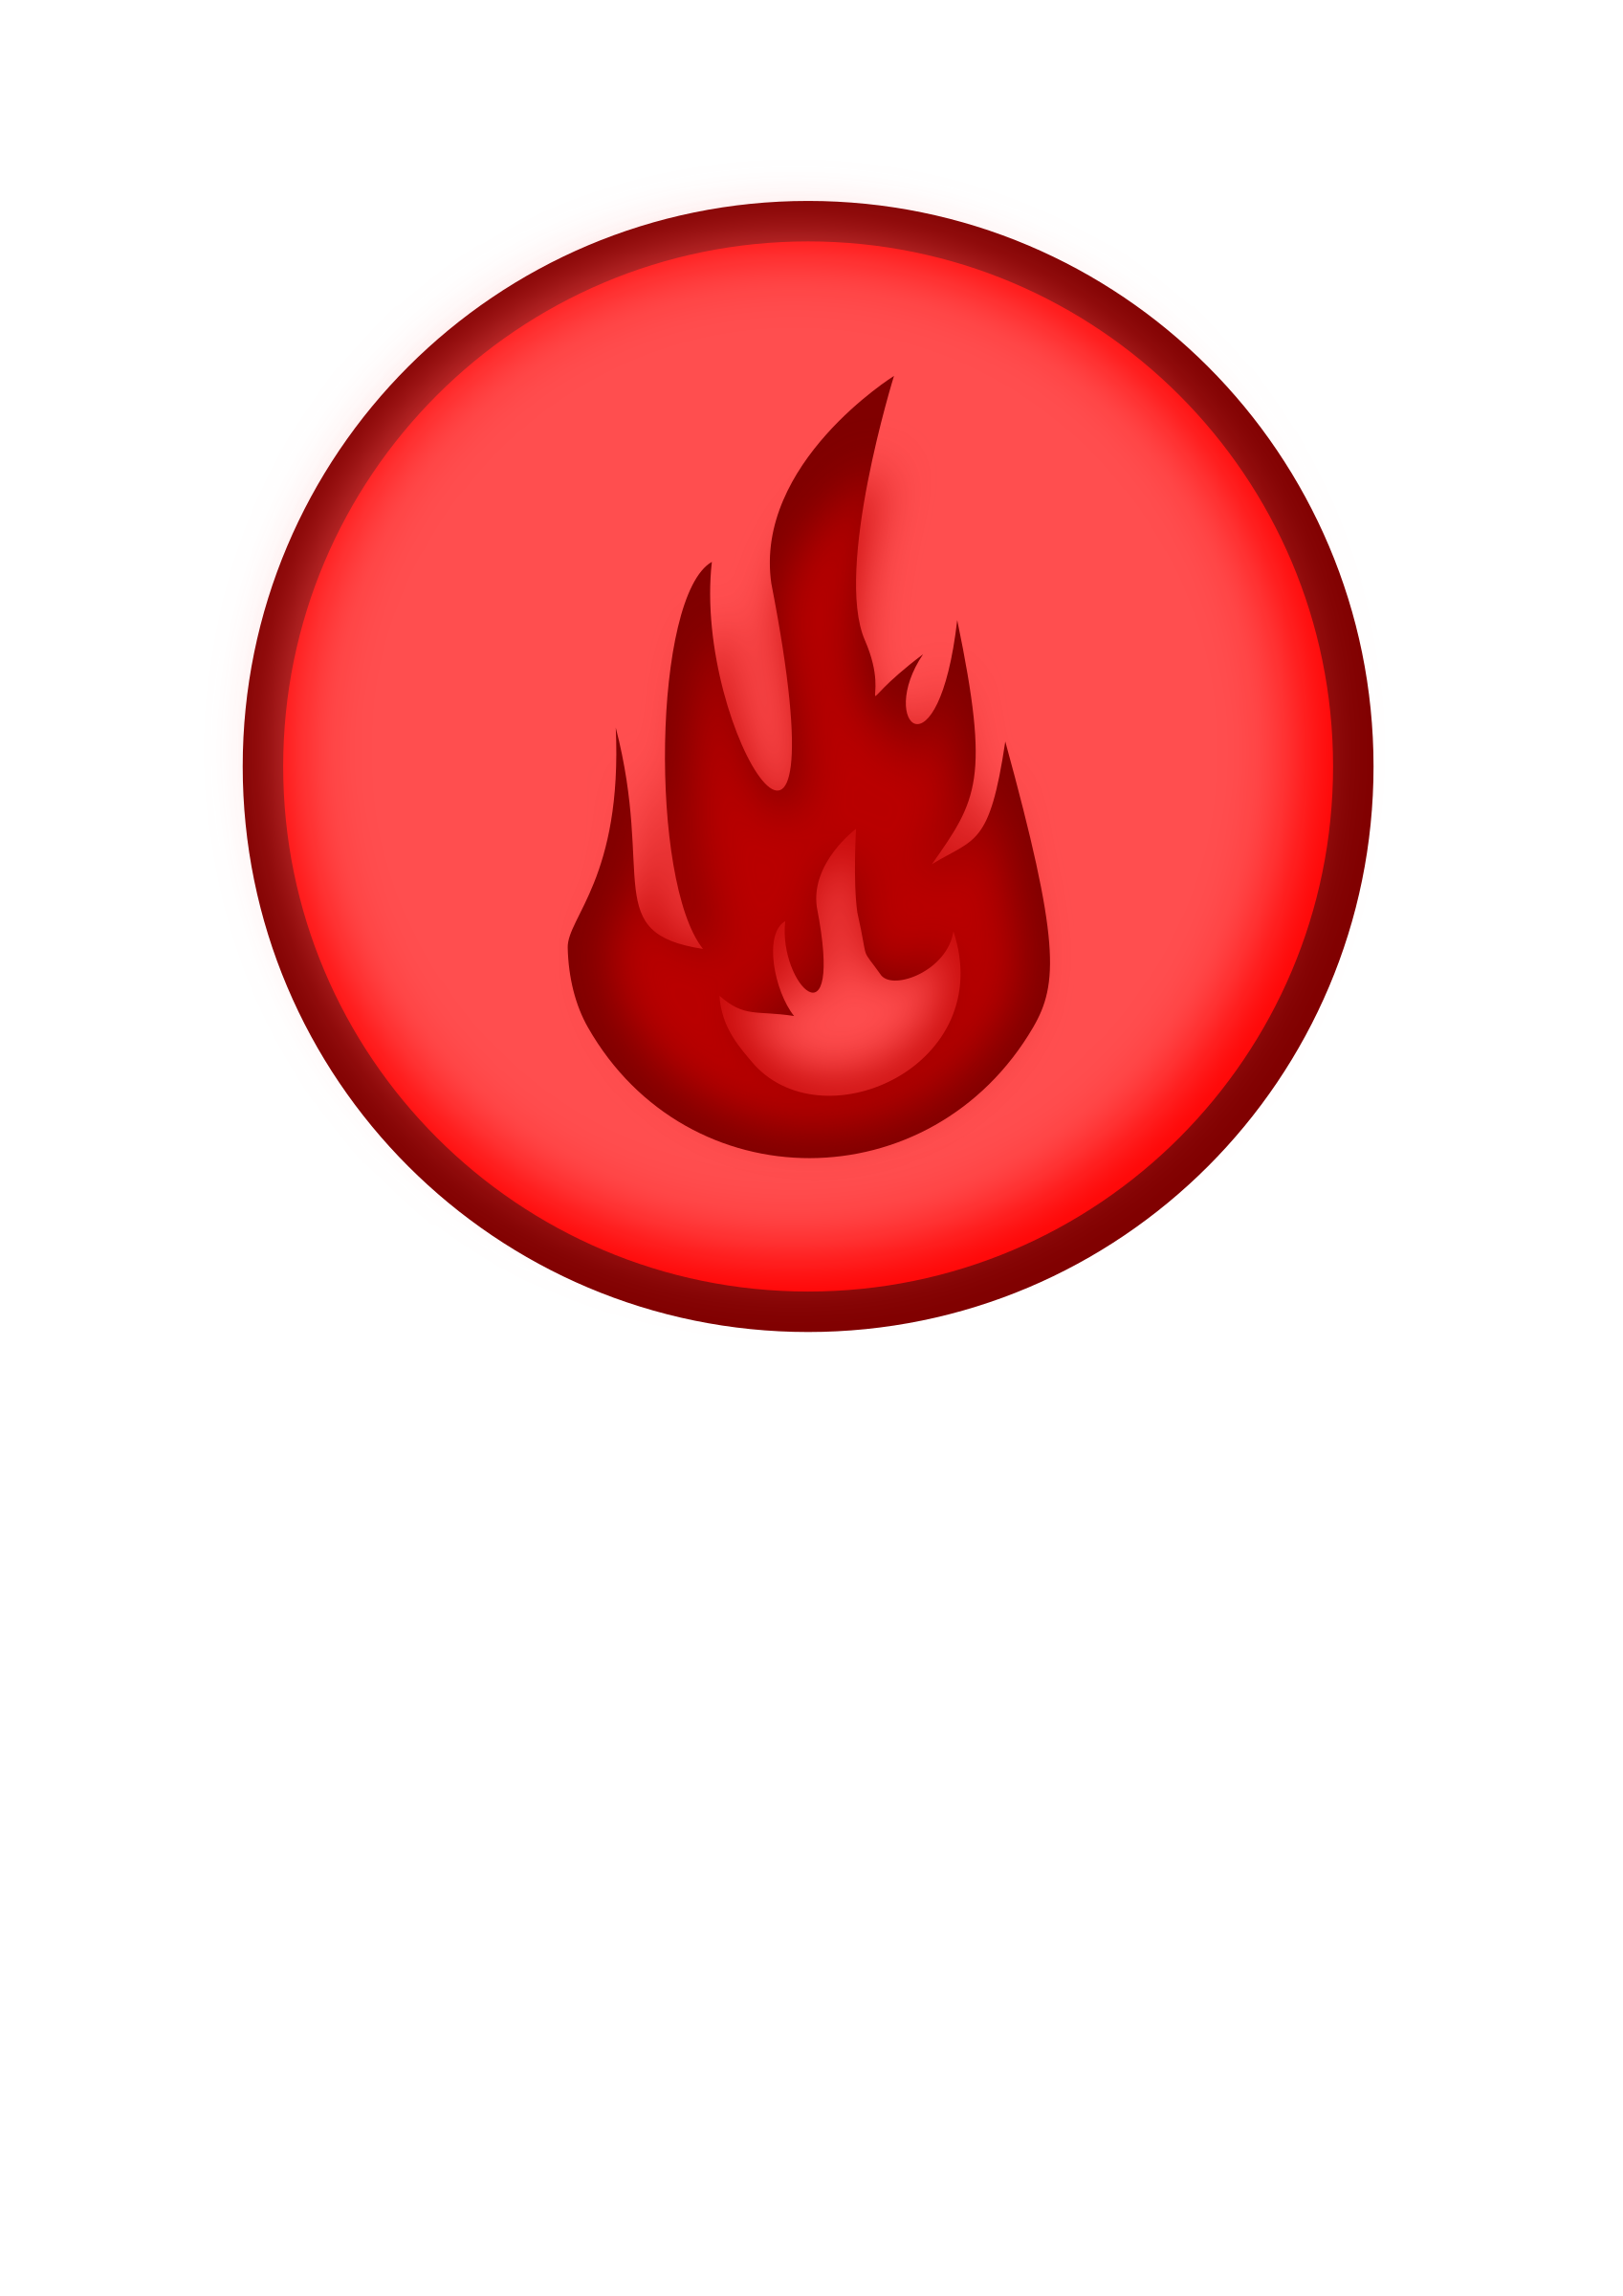 Fire icon by ArkyanSoul